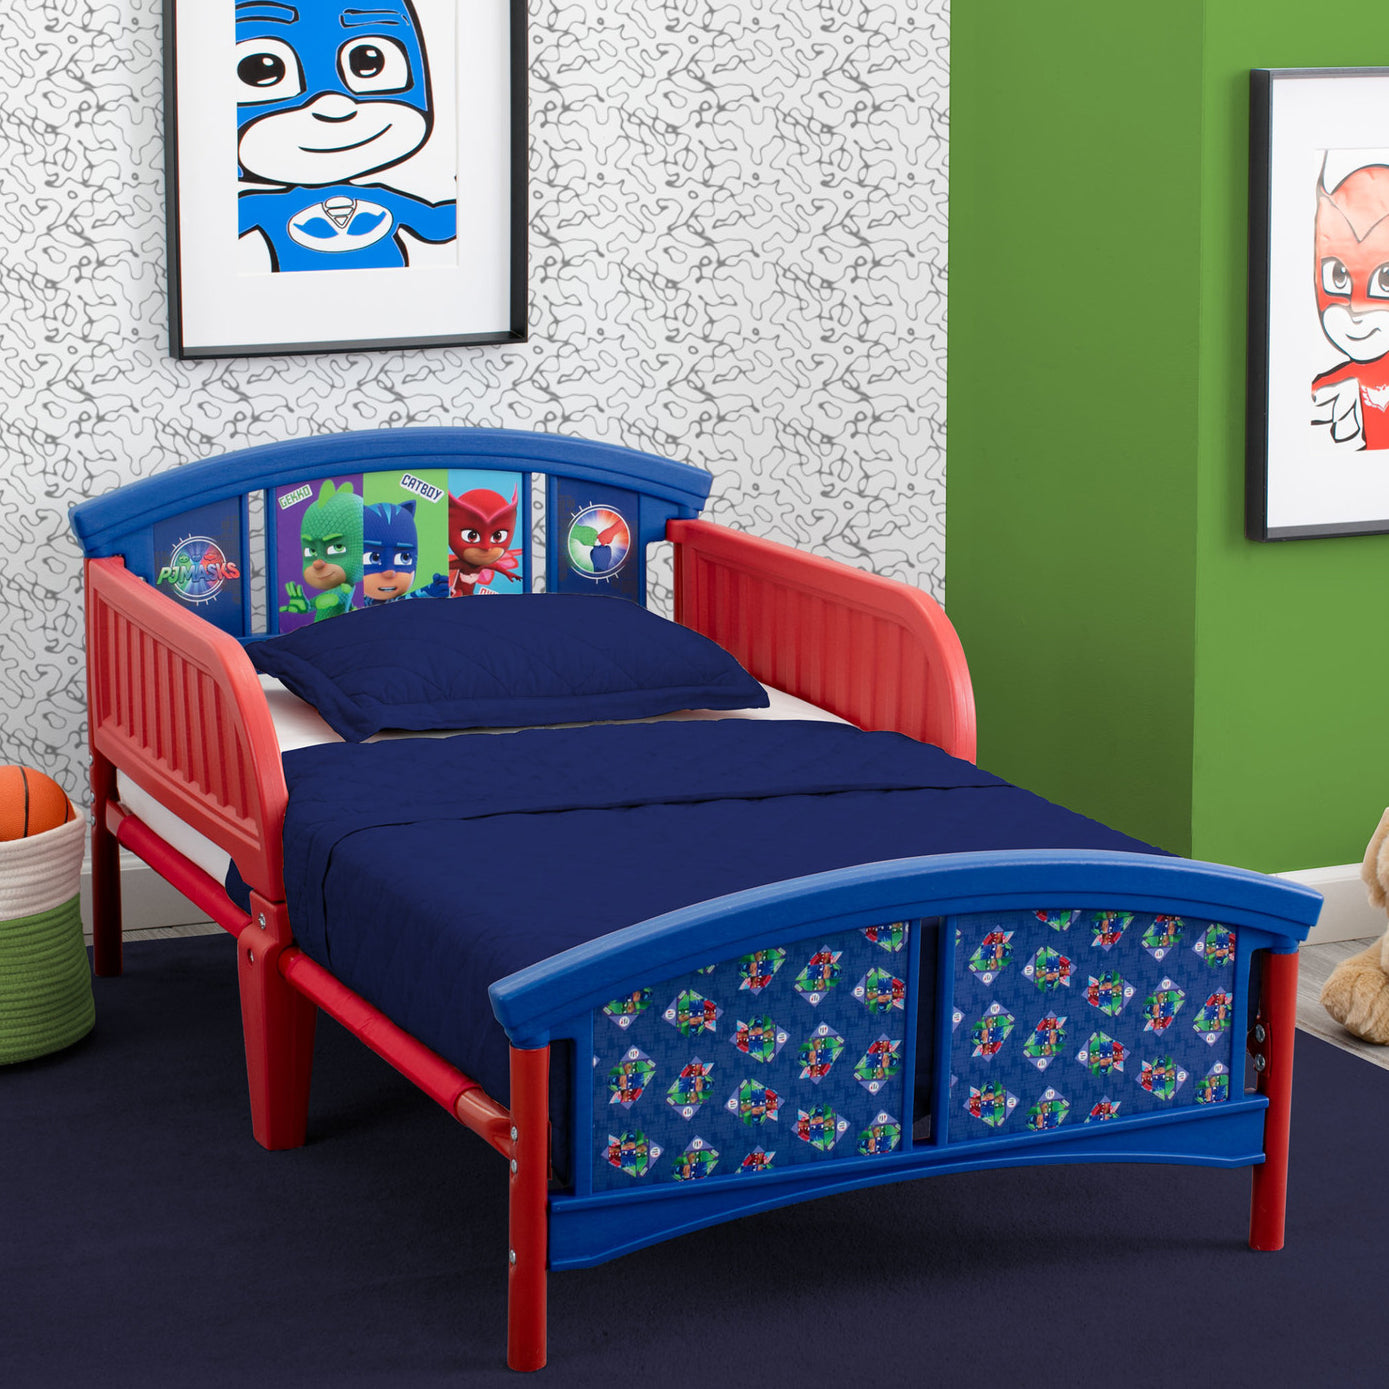 PJ Masks Plastic Toddler Bed